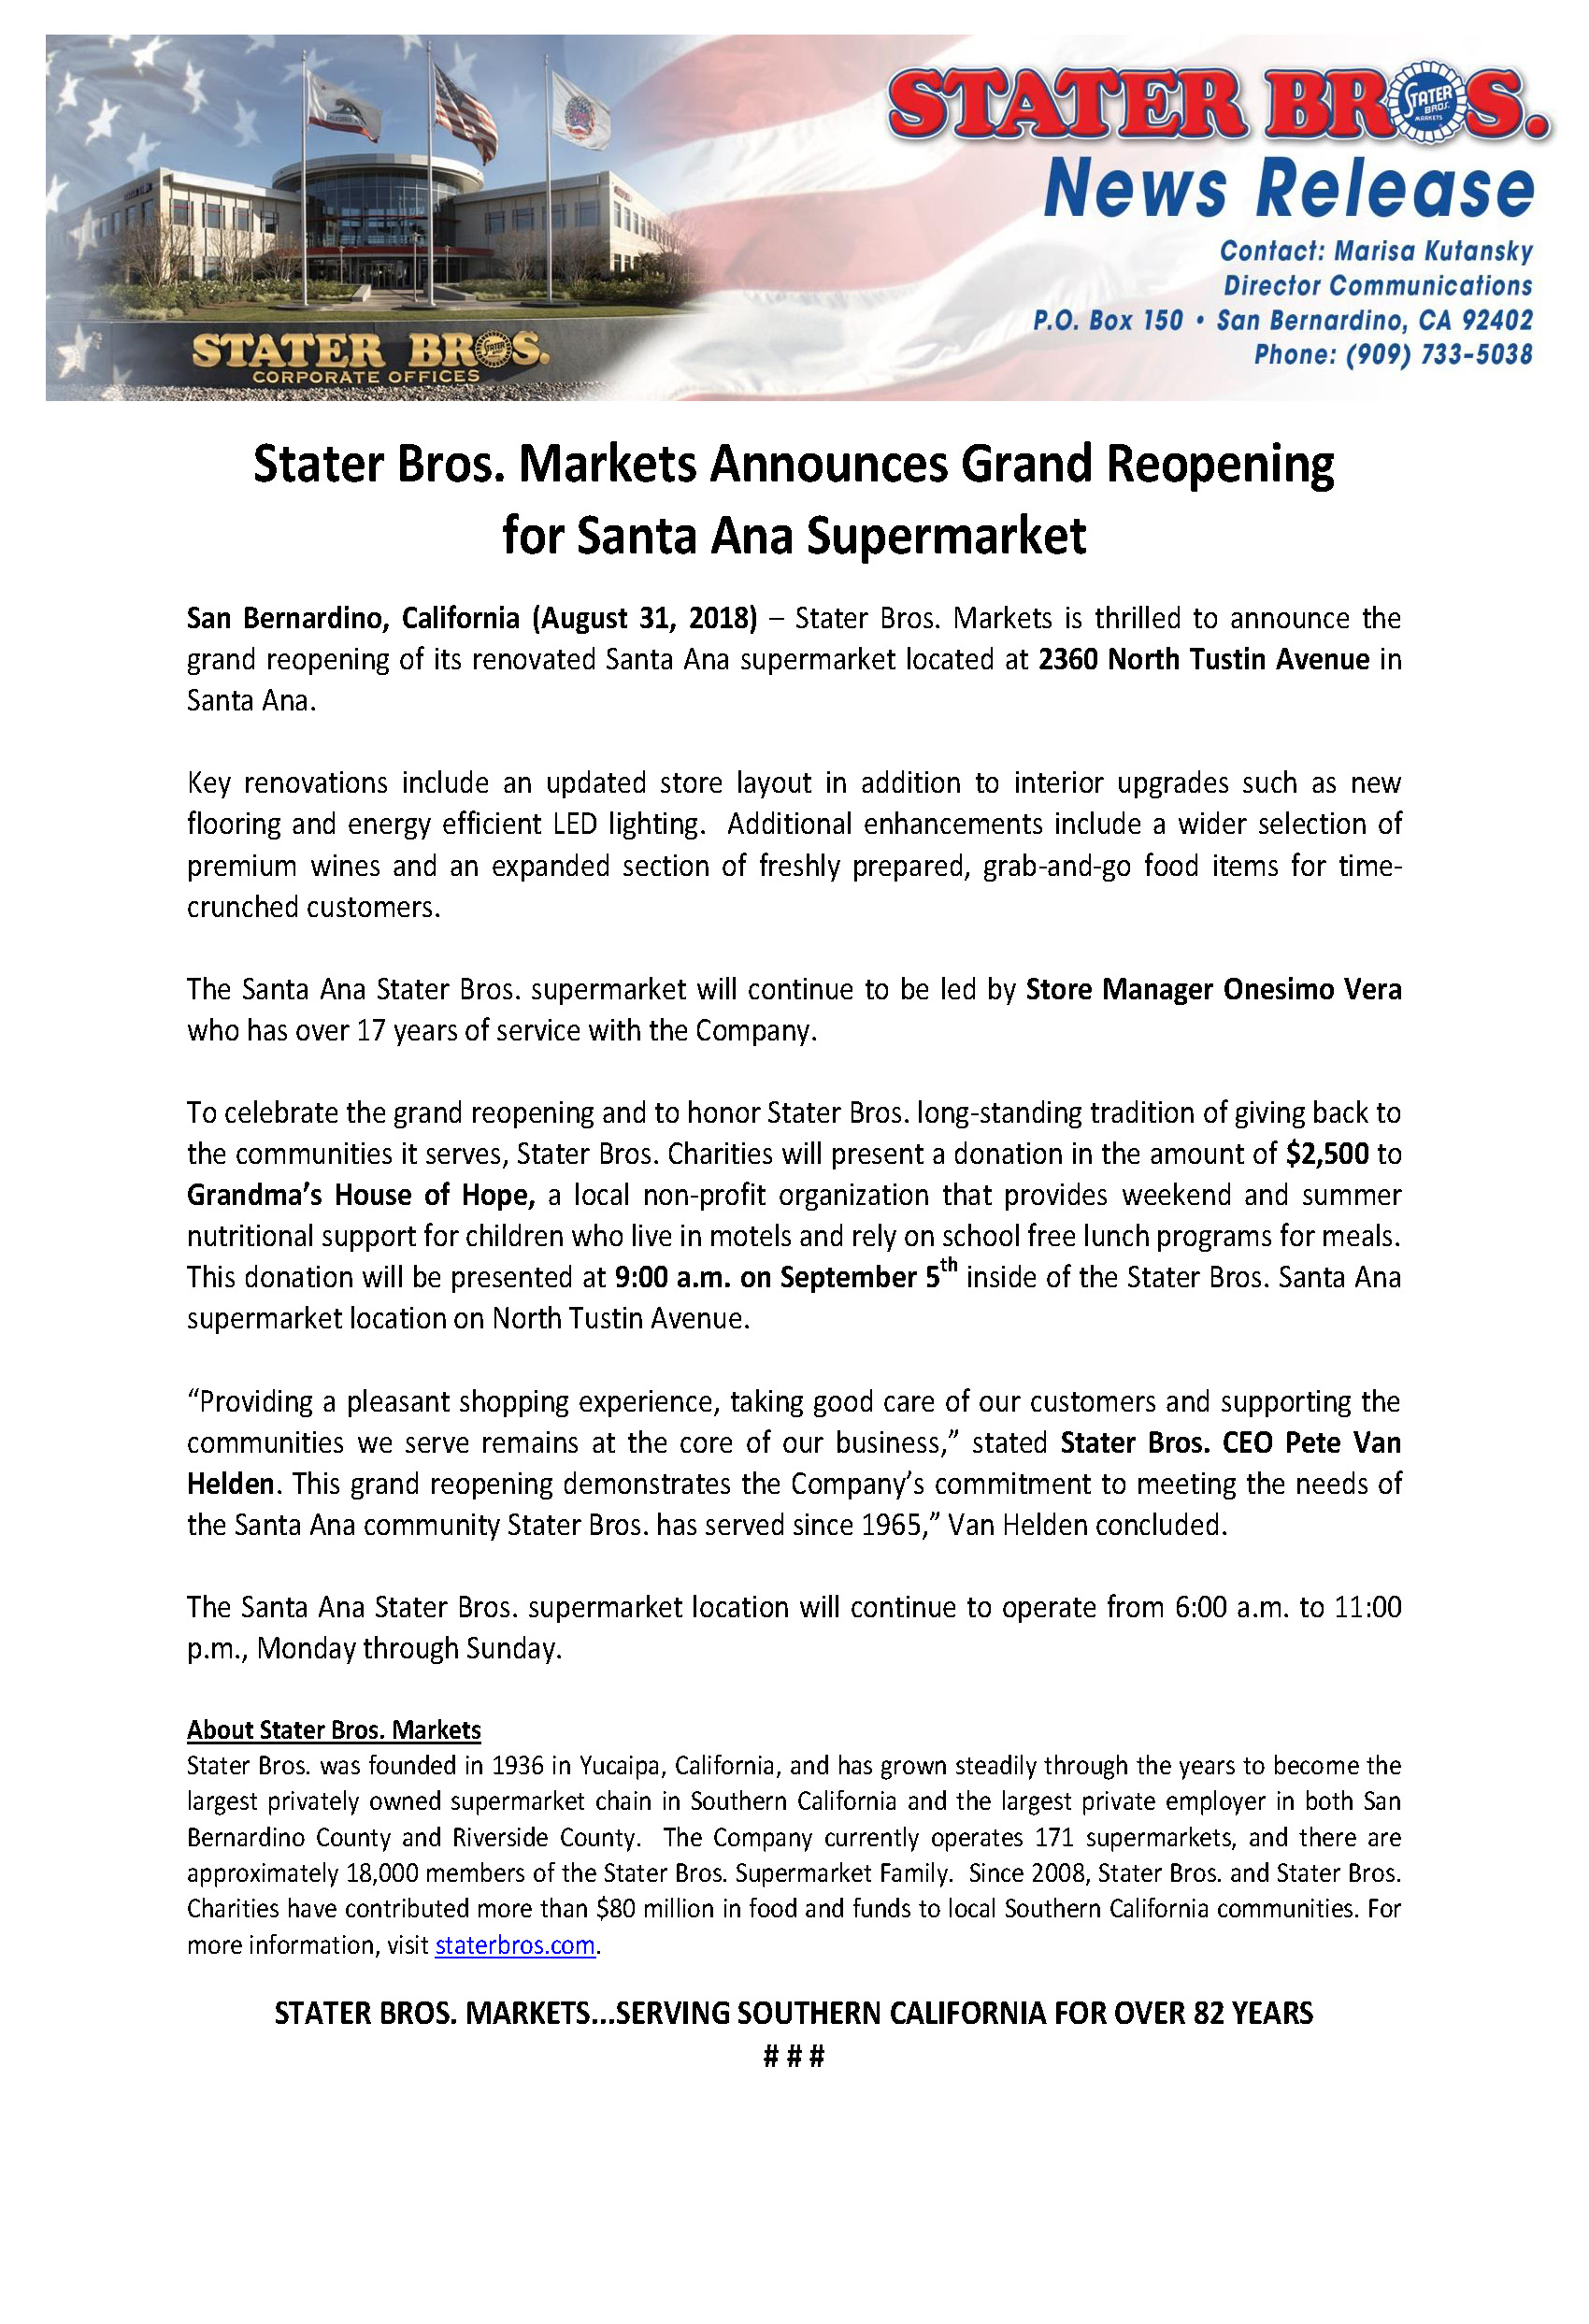 Stater Bros. Markets Announce Grand Reopening for Santa Ana ...